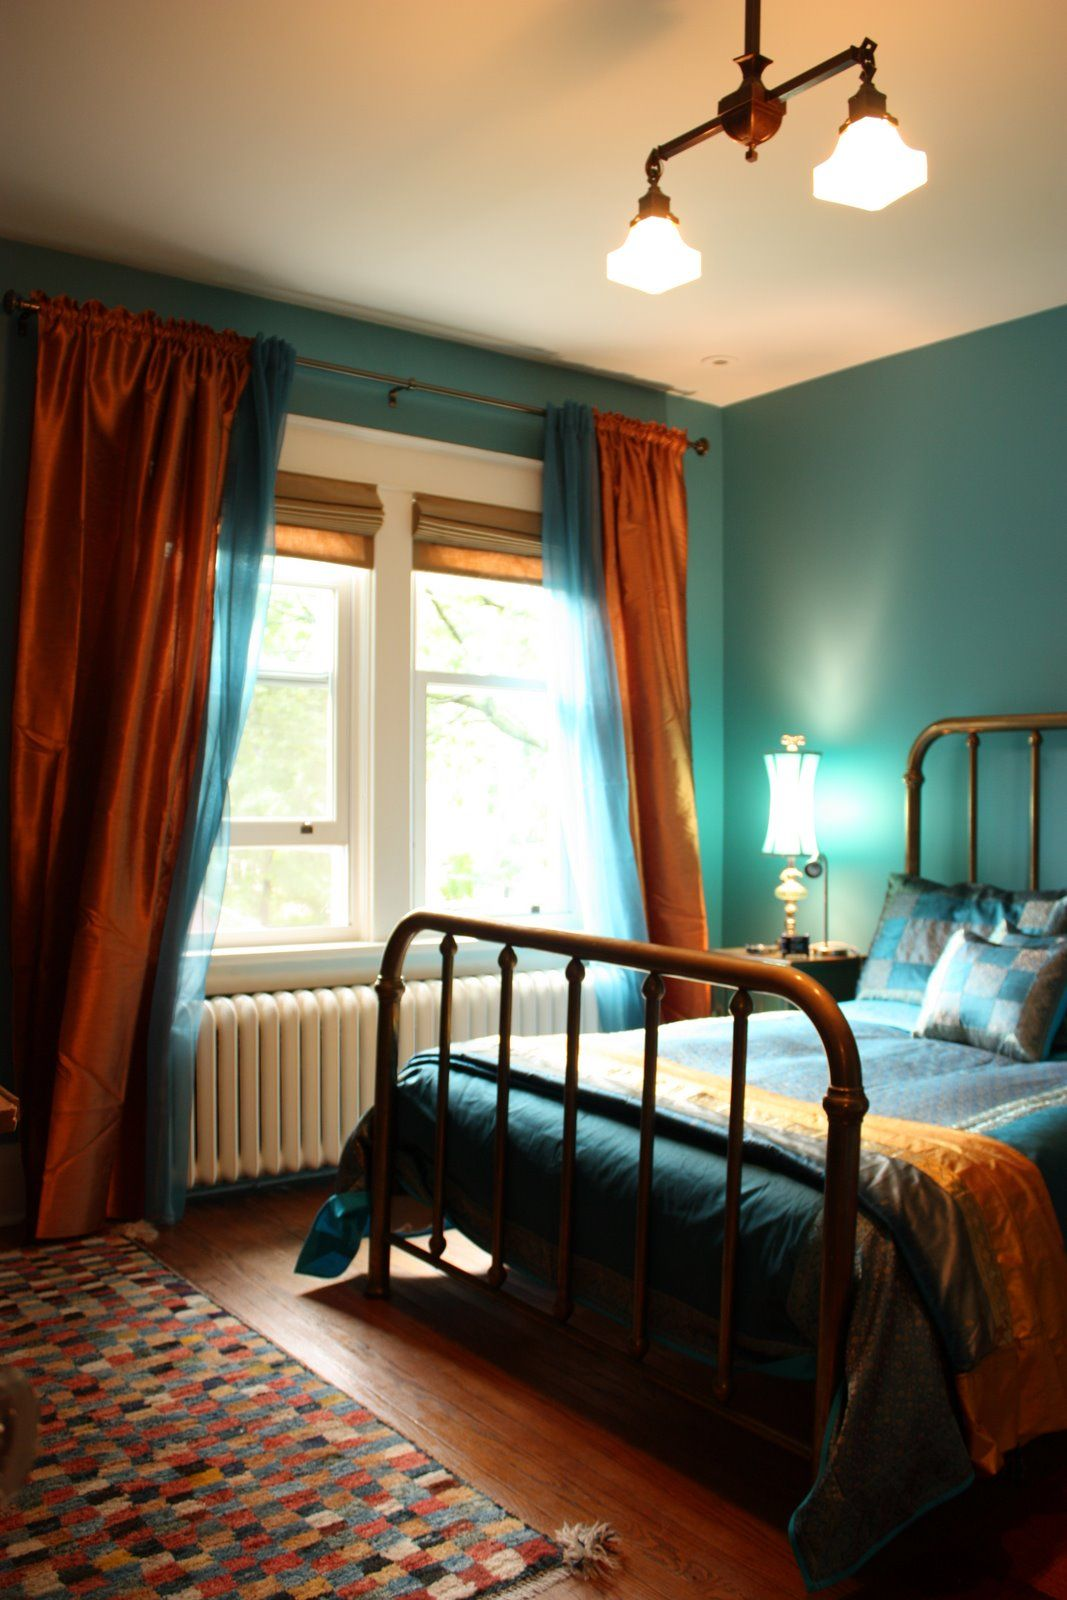 Teal Pictures Bedroom Bedroom Done In Teal And Copper A Mix Of Bohemian Chic And Turn Of